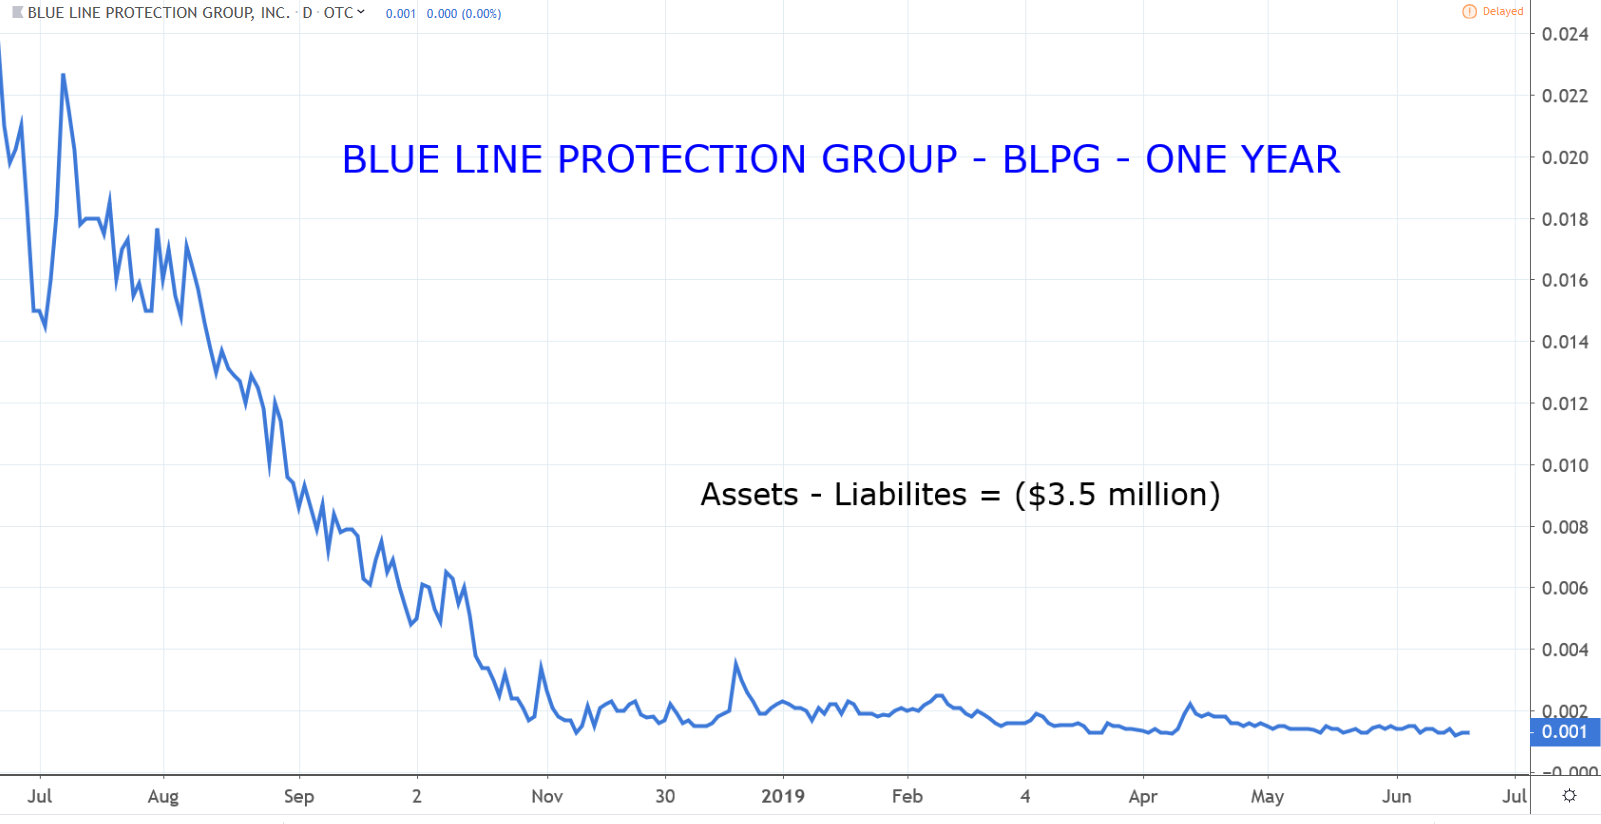 Penny Stocks: Blue Line Protection Group (BLPG)